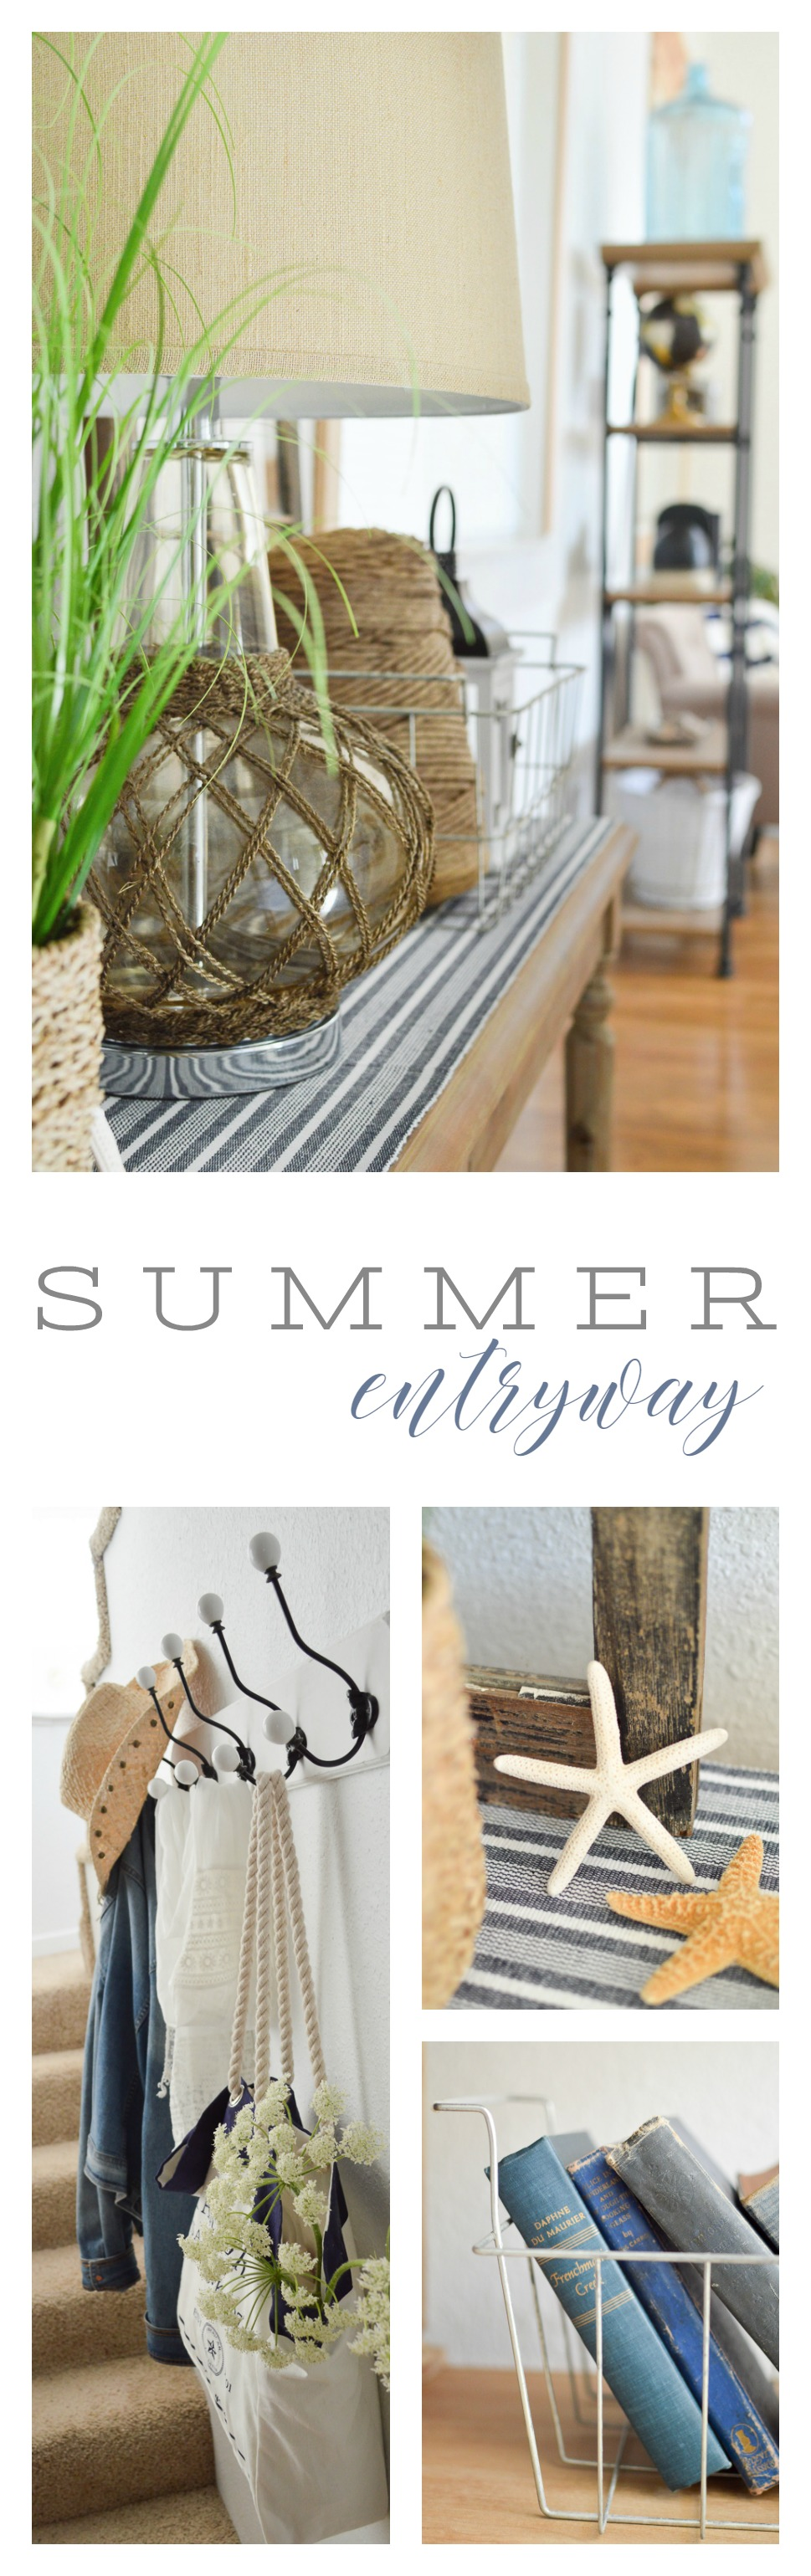 Summer Entryway Nautical Coastal Decorating - The Little Cottage at foxhollowcottage.com - #SummerEntryWay